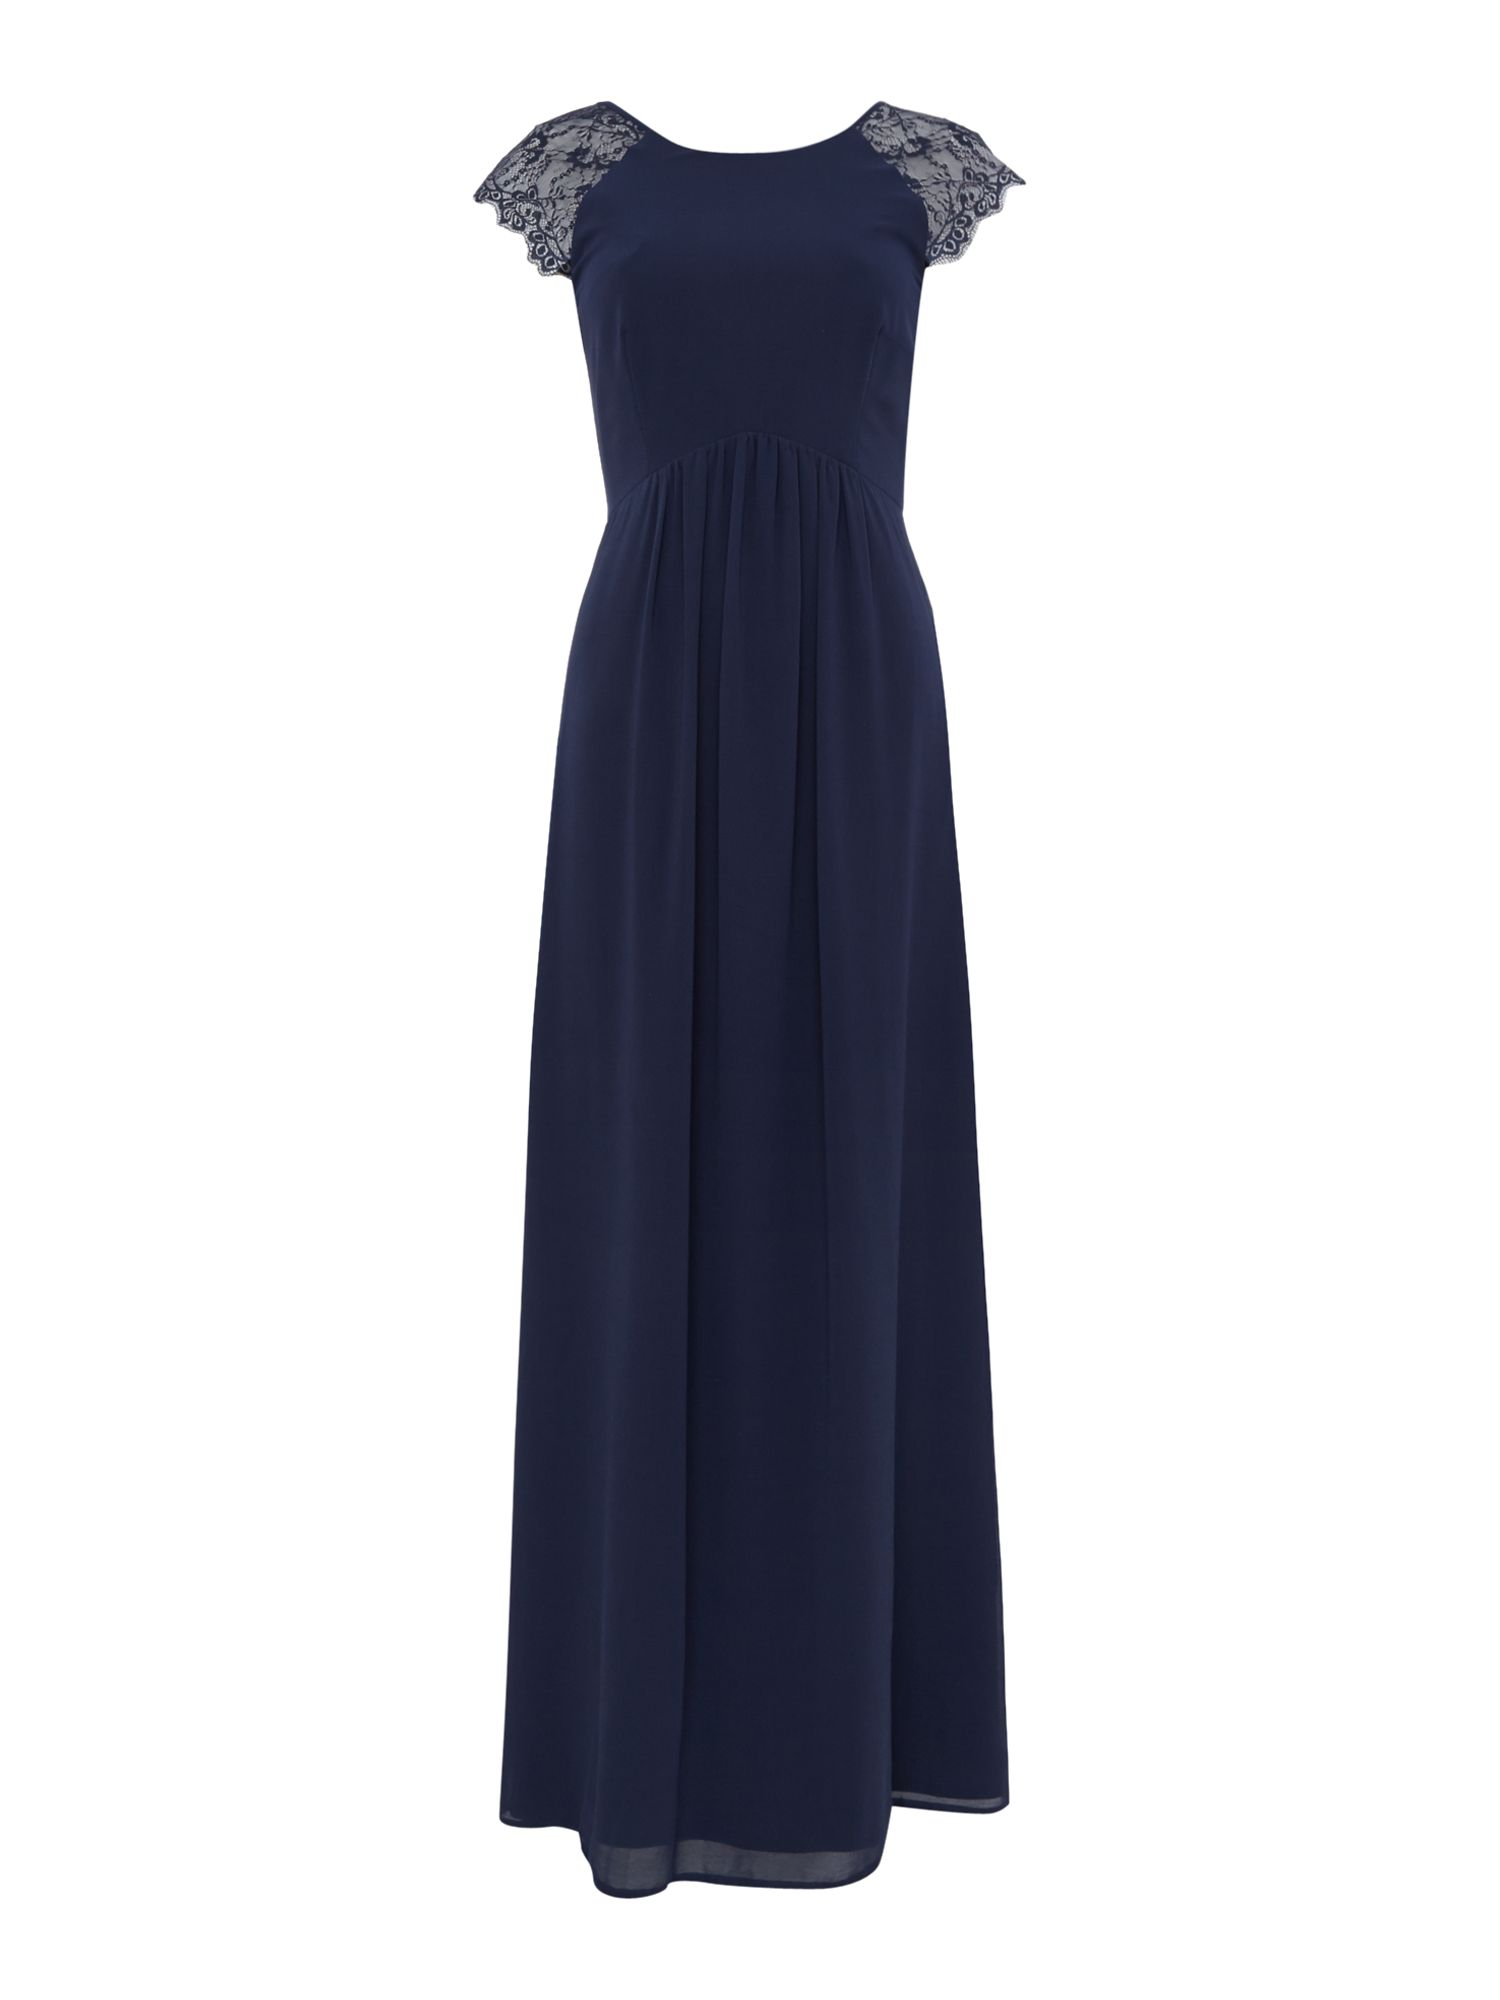 Elise Ryan Elise Ryan Cap Sleeved Lace Shoulder Maxi Dress, Navy